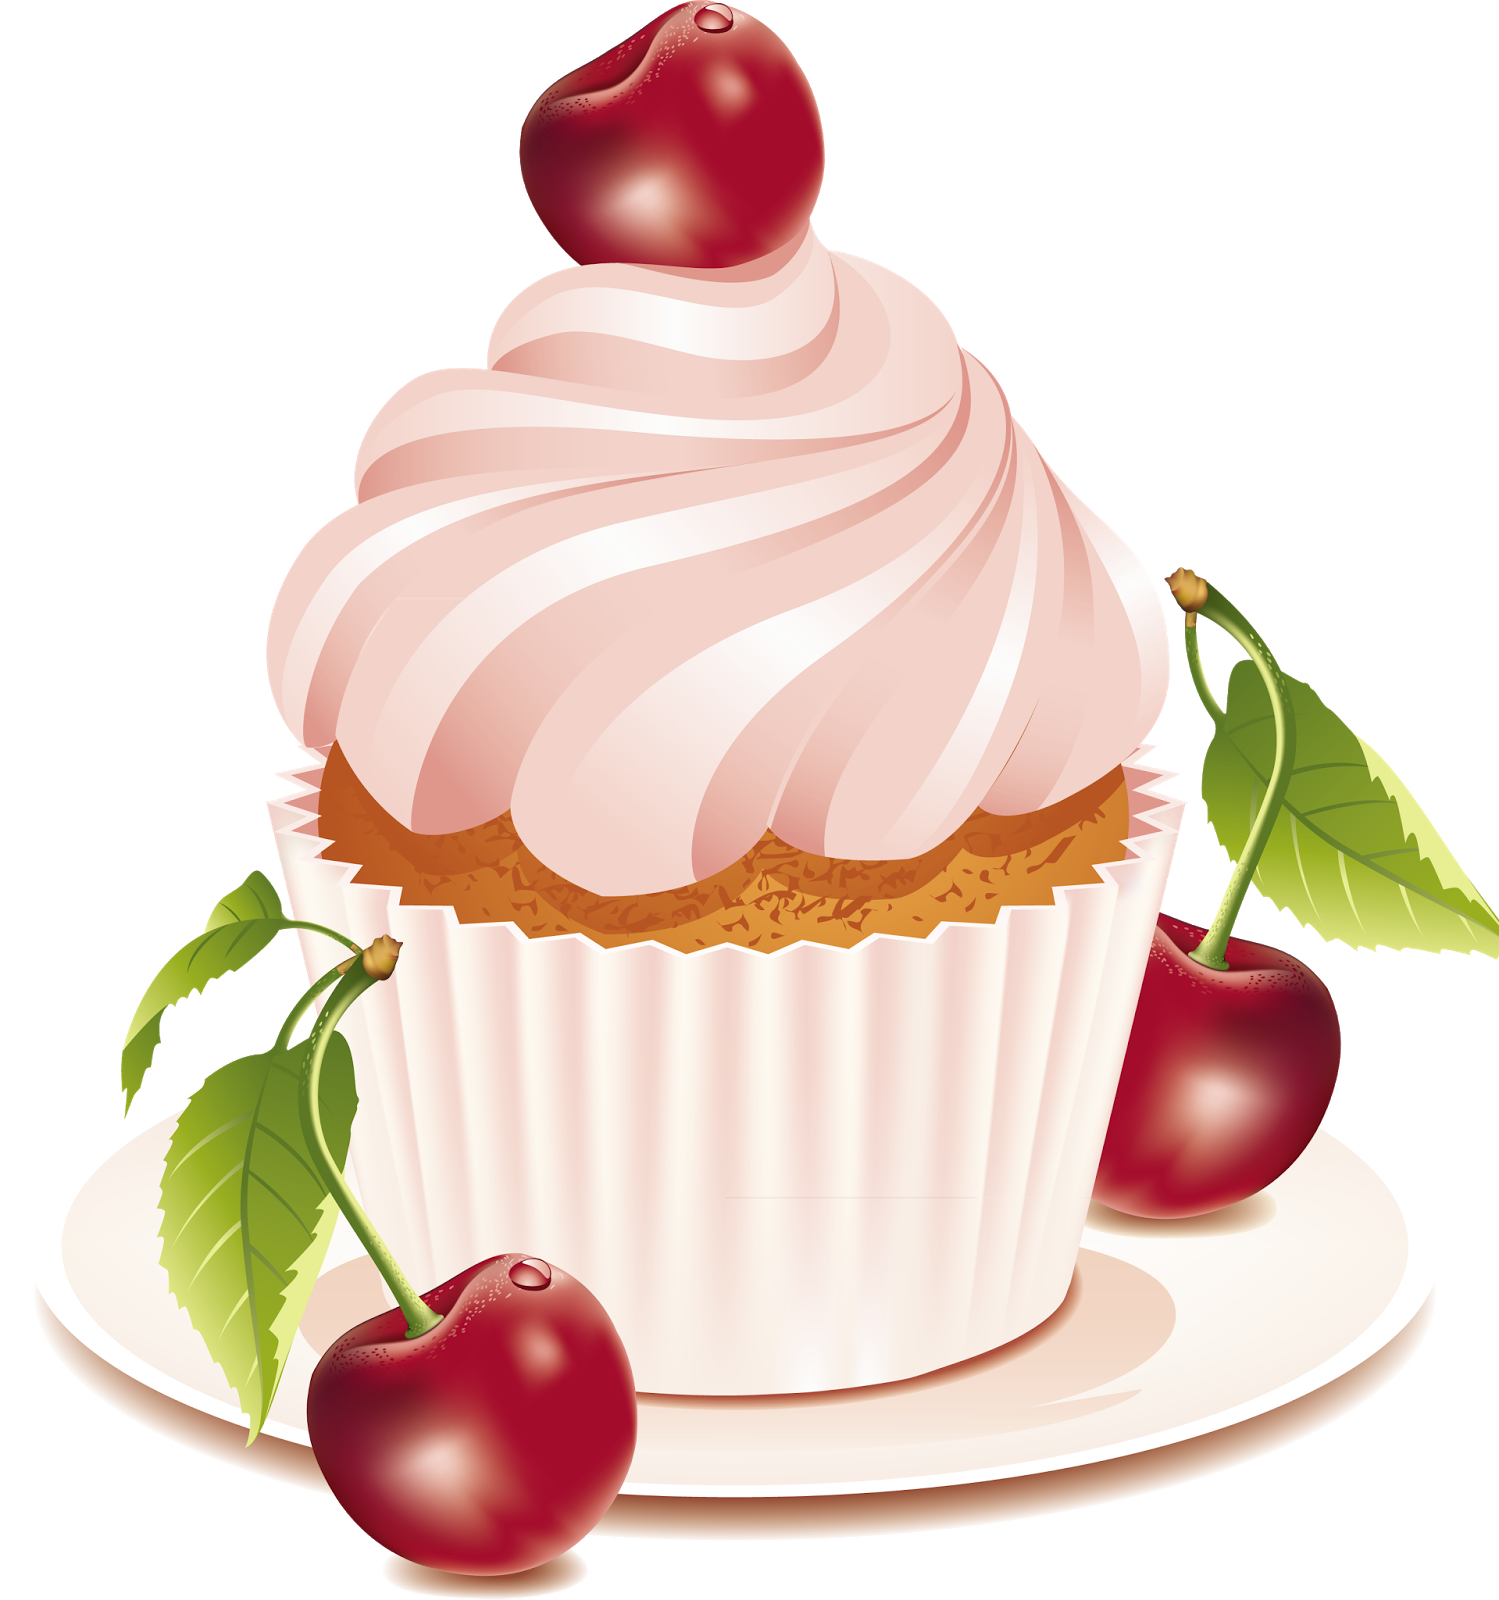 Muffins clipart mom cooking. Cupcakes desenho vintage pesquisa